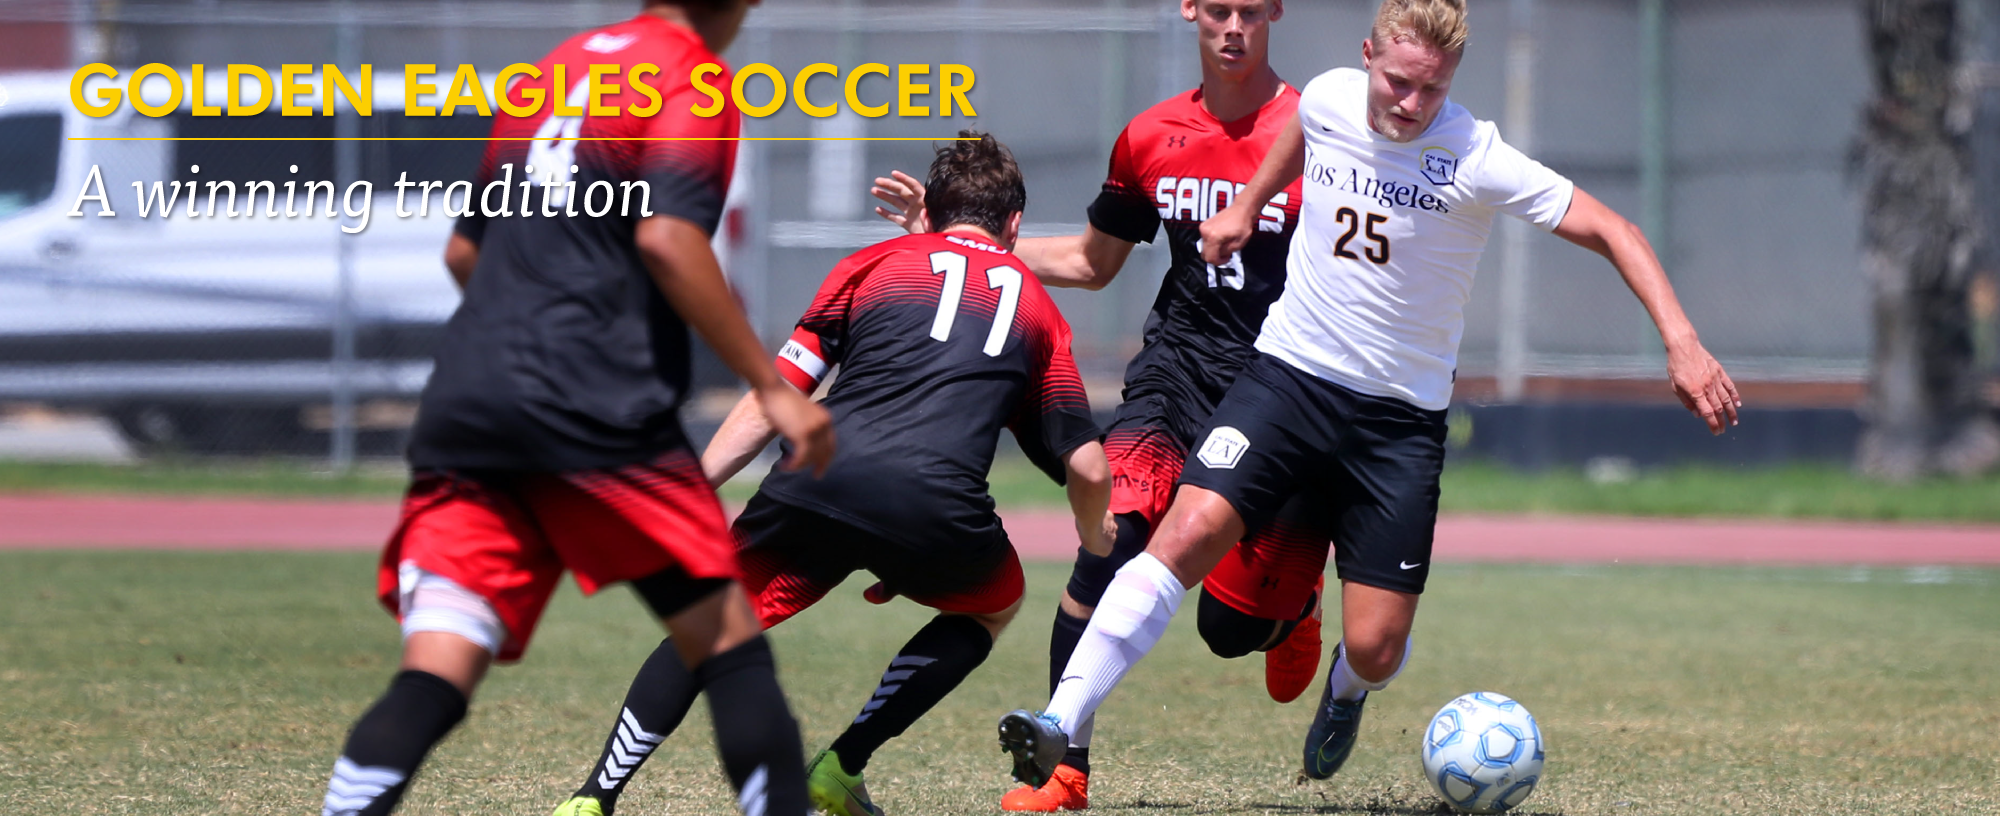 Golden Eagle soccer has a winning tradition